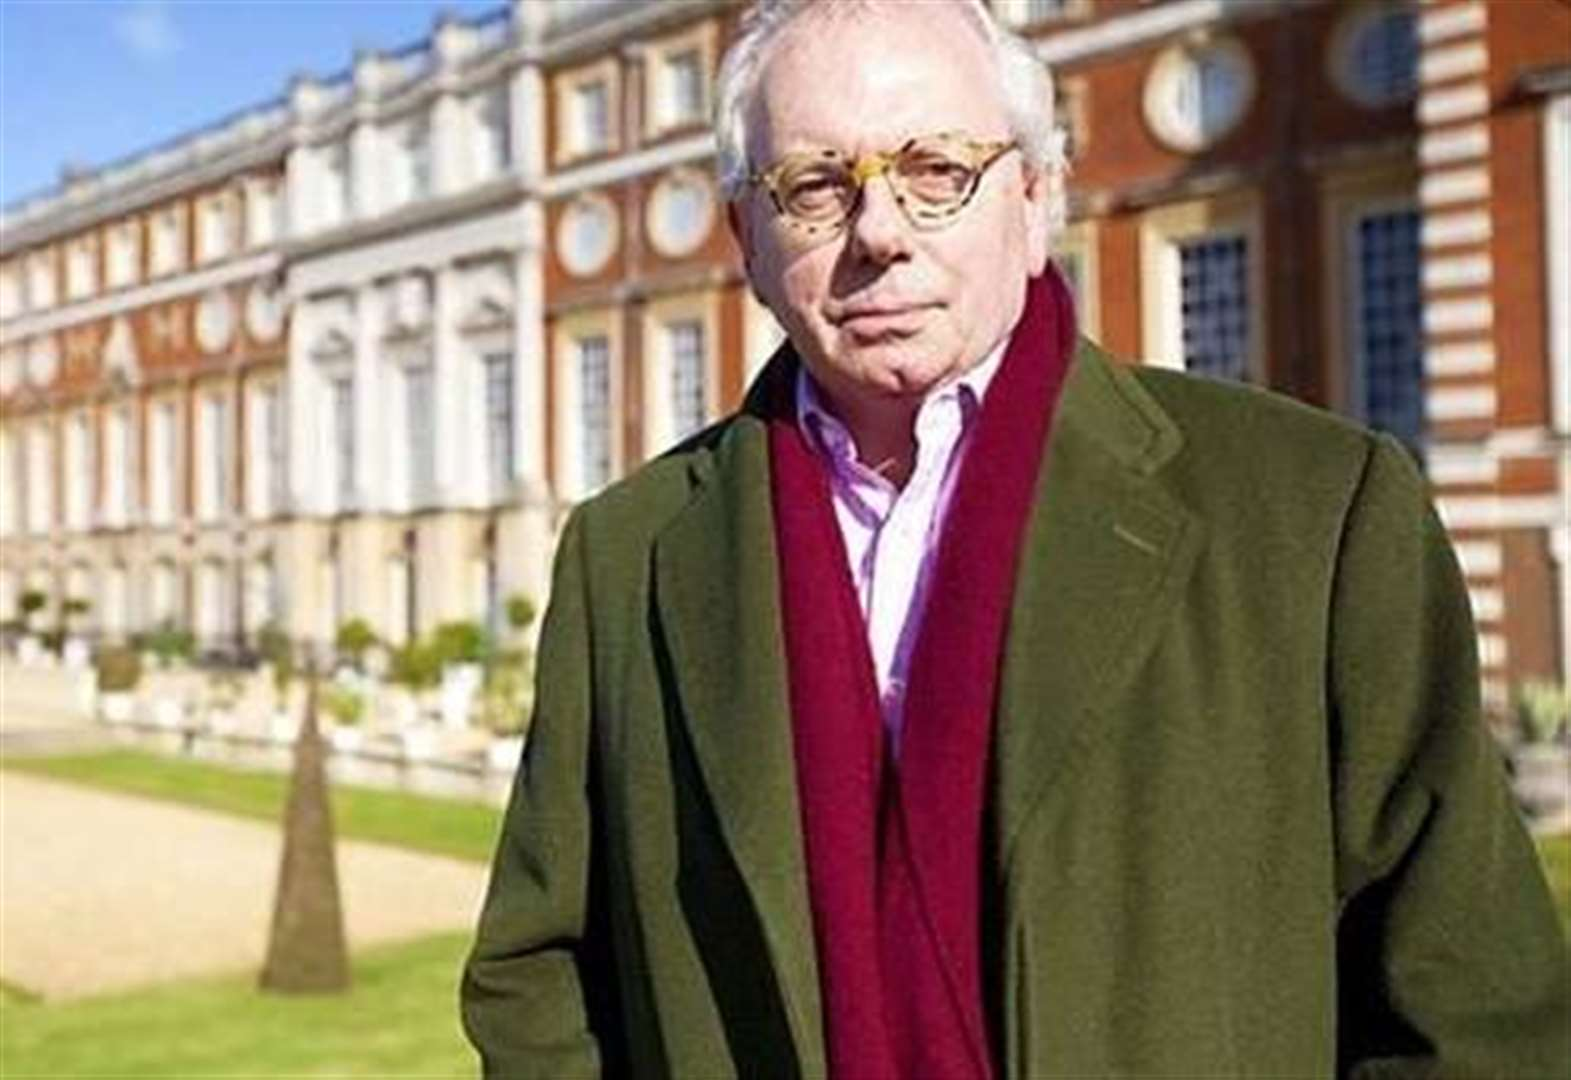 Meghan Markle the subject of a talk by David Starkey at the Cambridge Arts Theatre